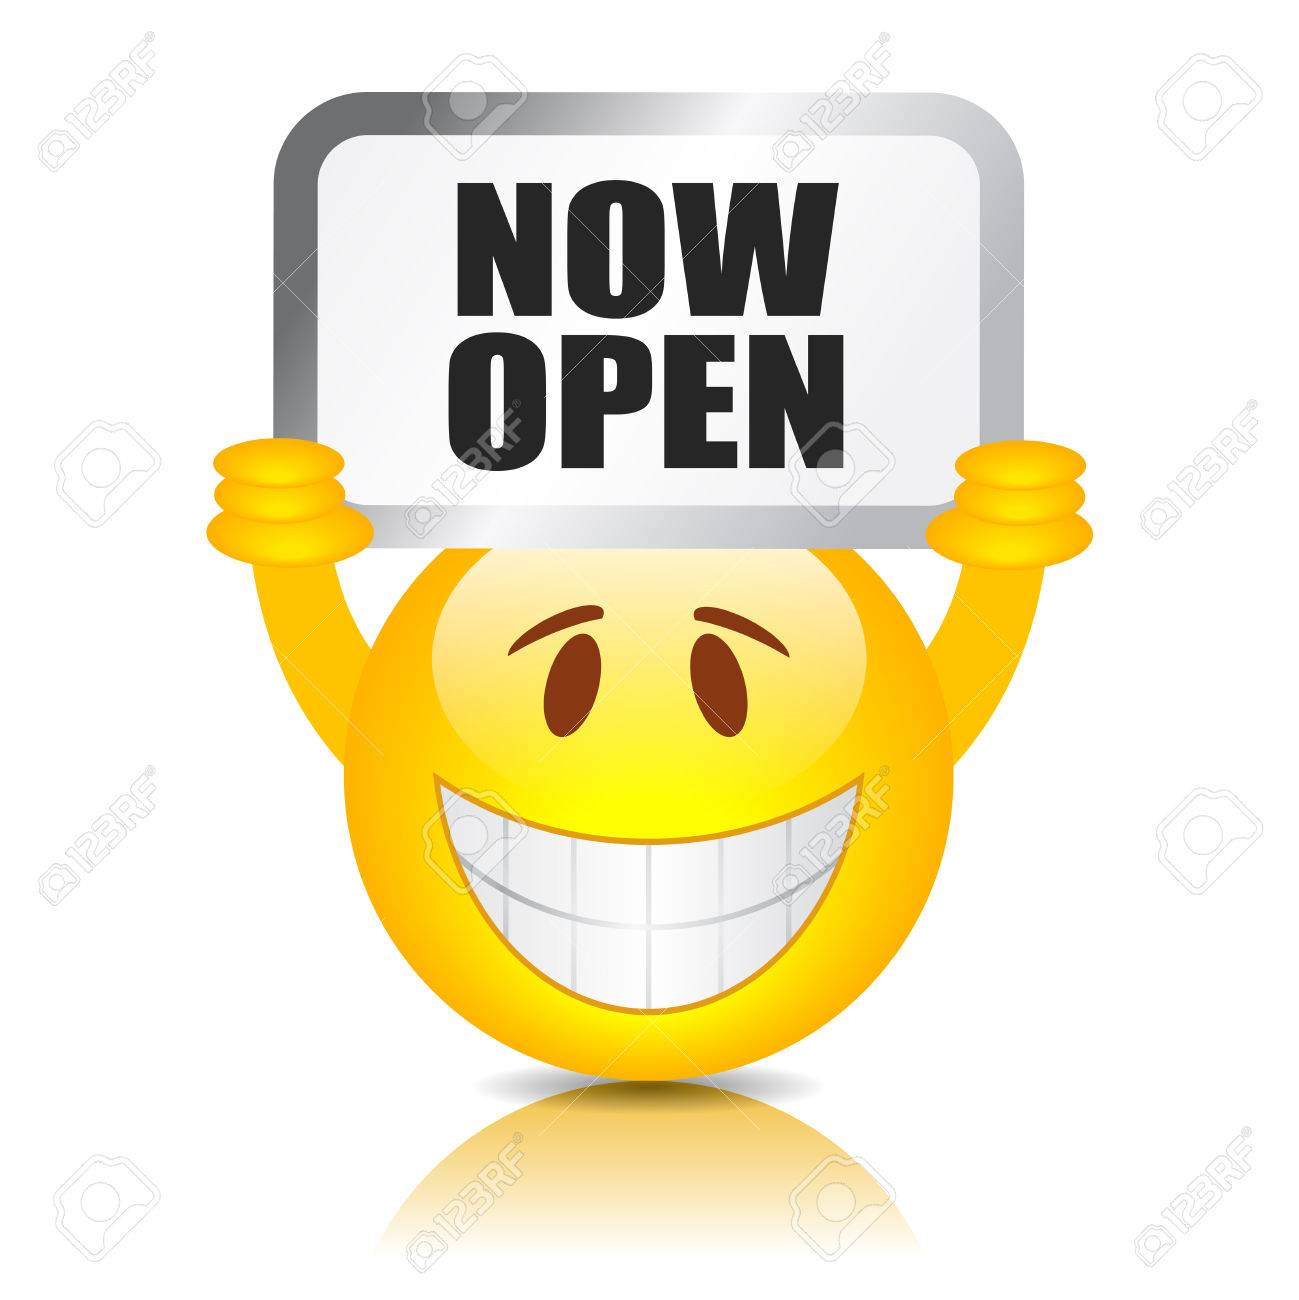 Now Open Sign Royalty Free Cliparts, Vectors, And Stock ...